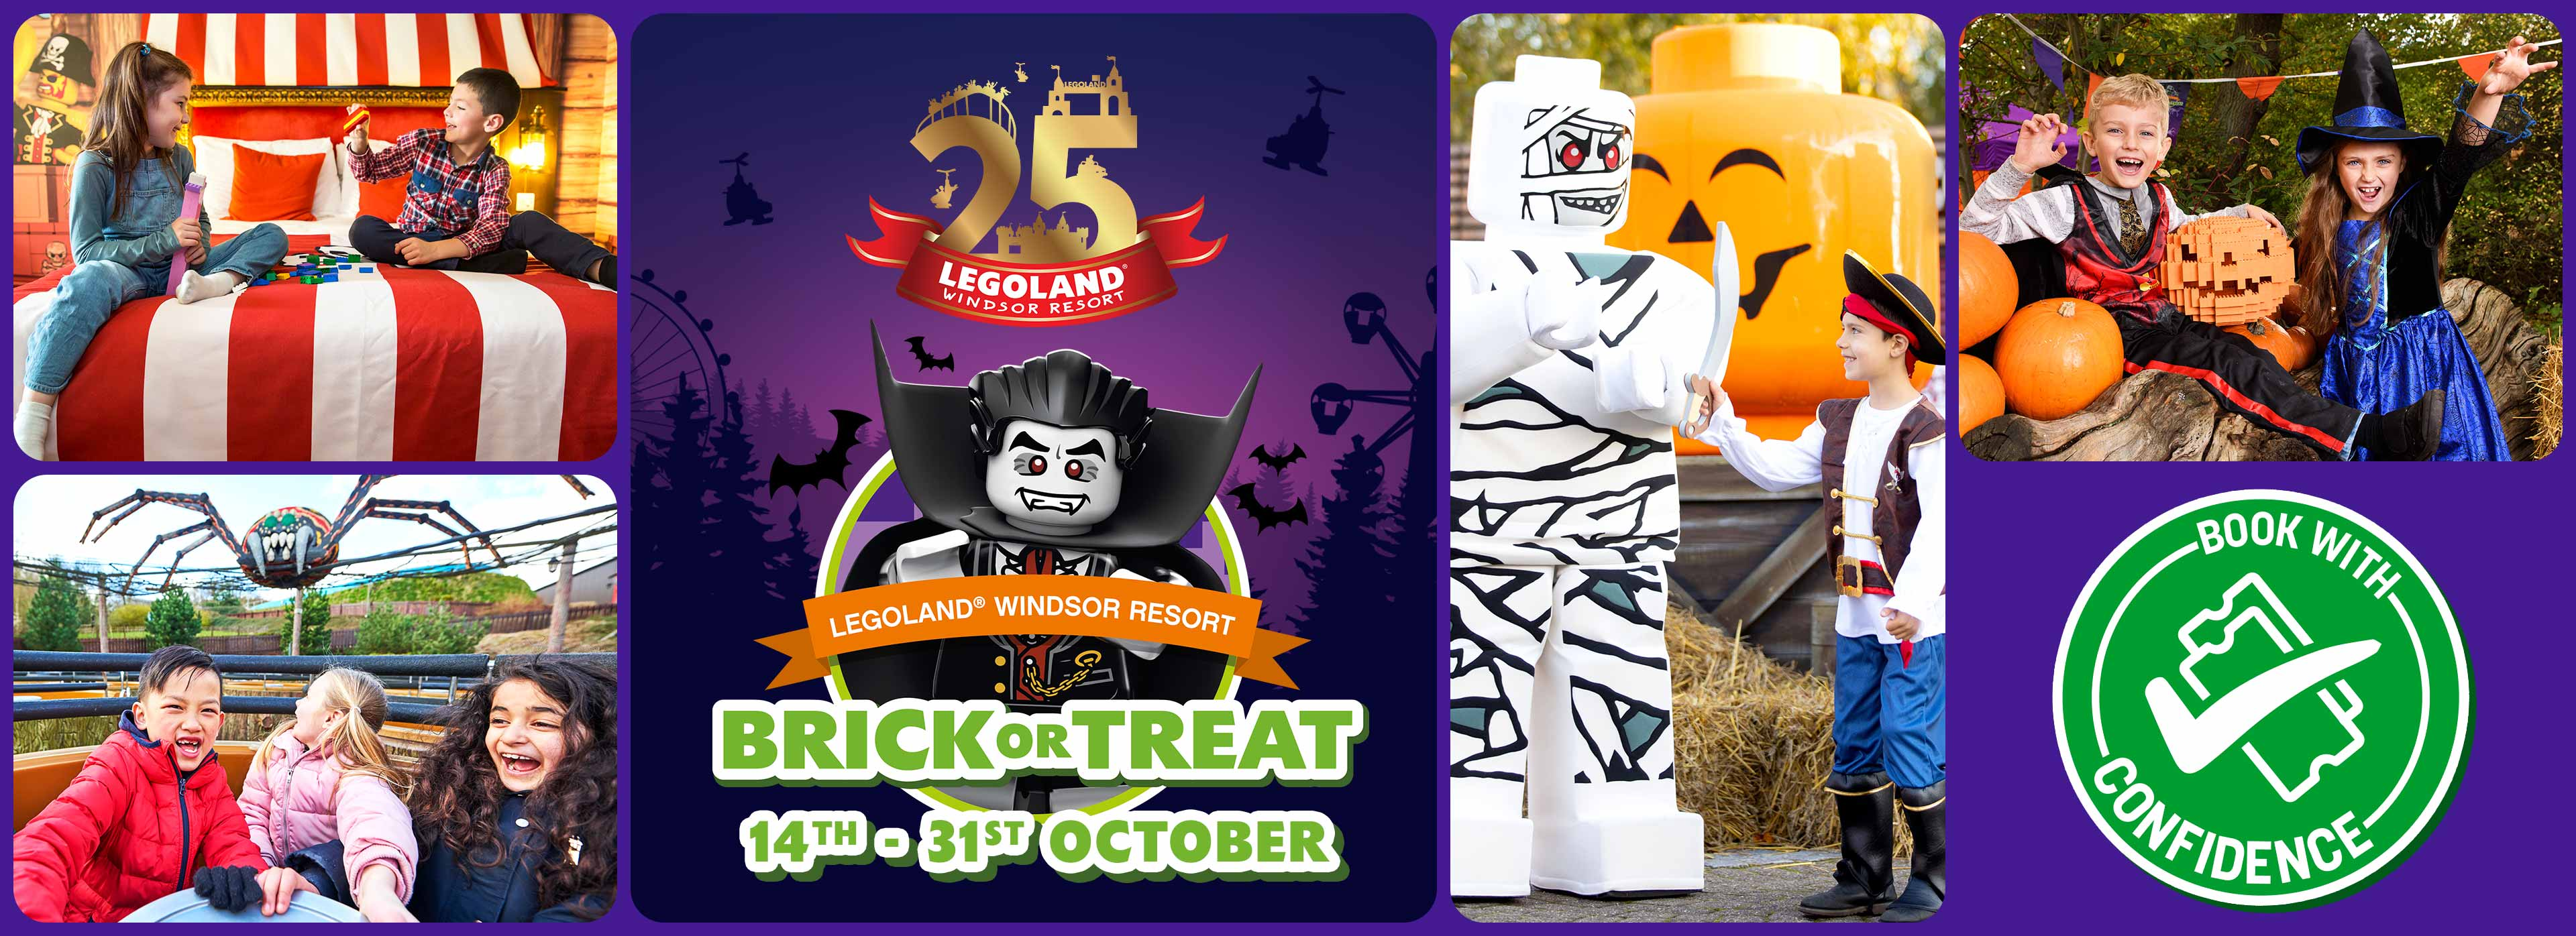 Brick or treat Halloween event at the LEGOLAND Windsor Resort